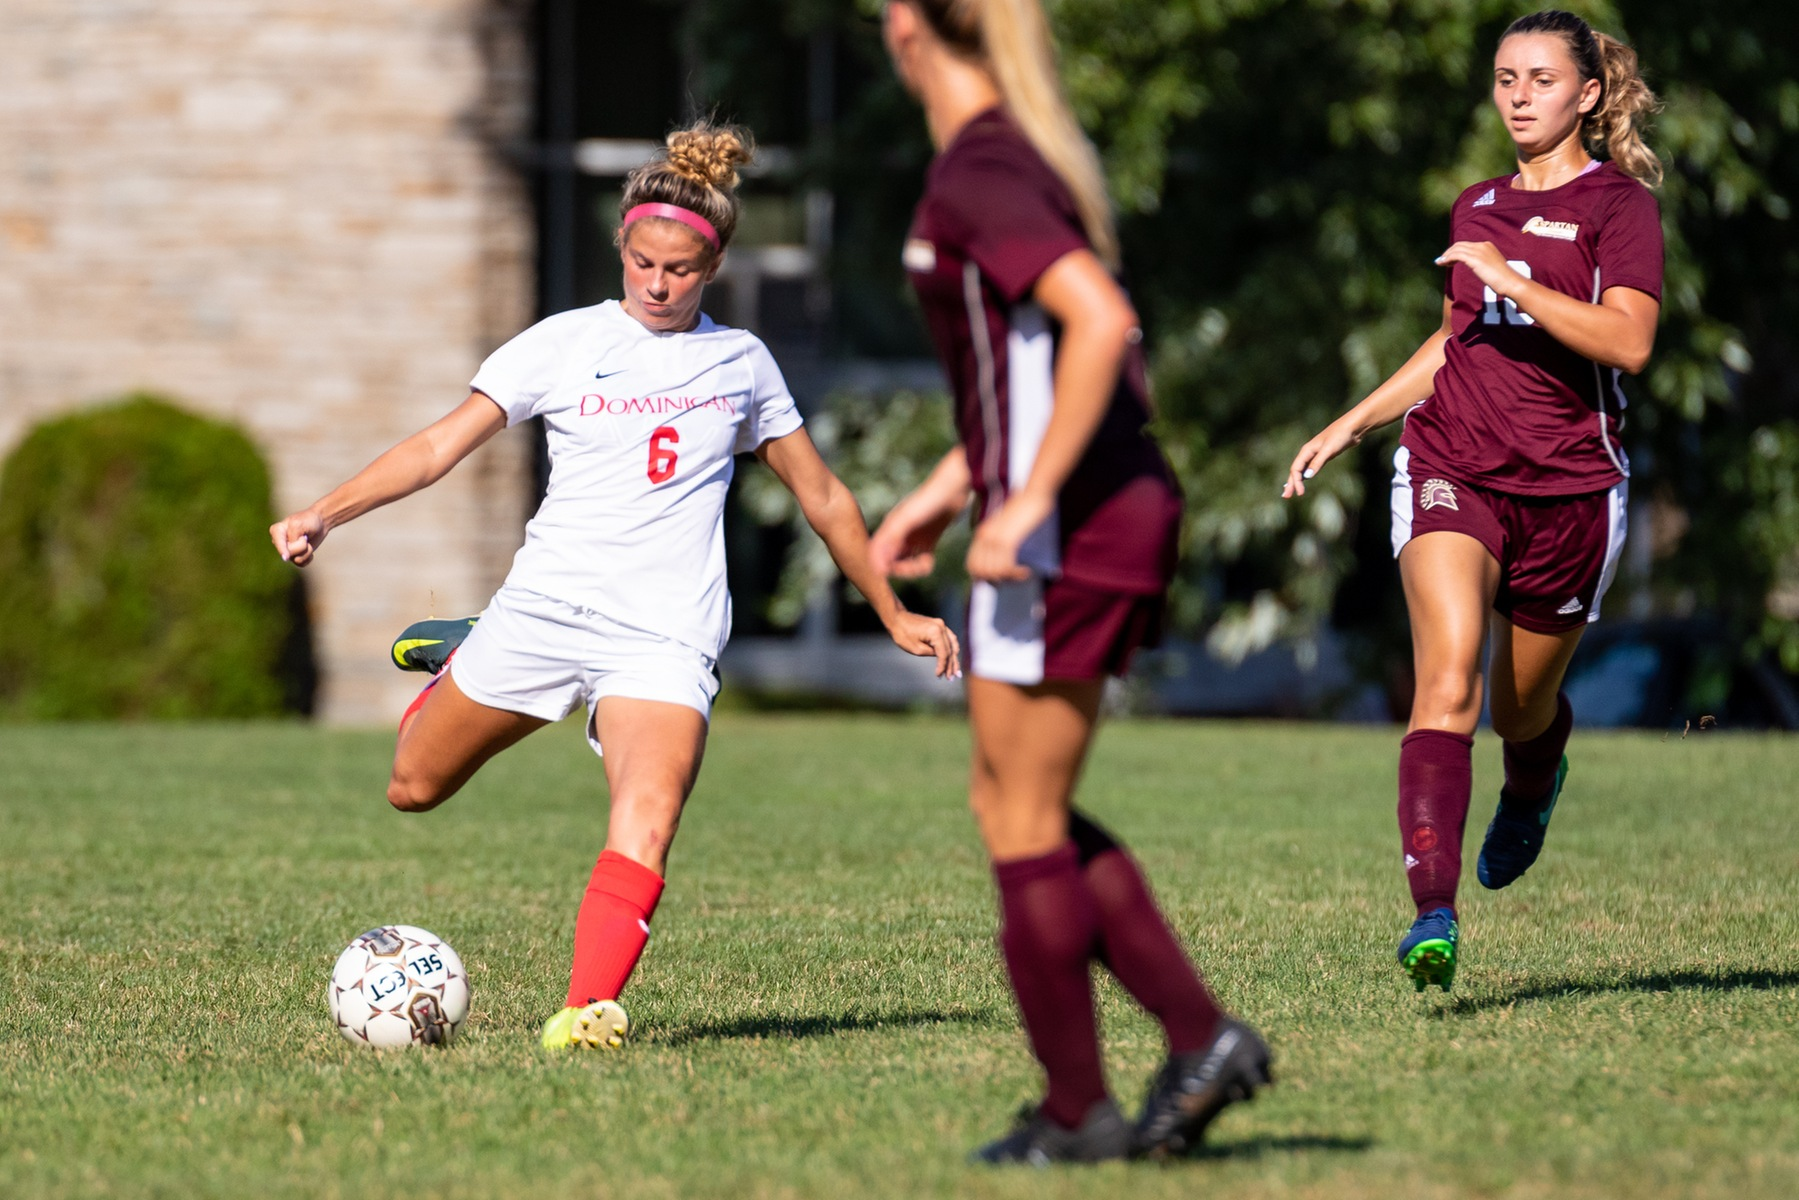 LADY CHARGERS UPEND CHESTNUT HILL COLLEGE